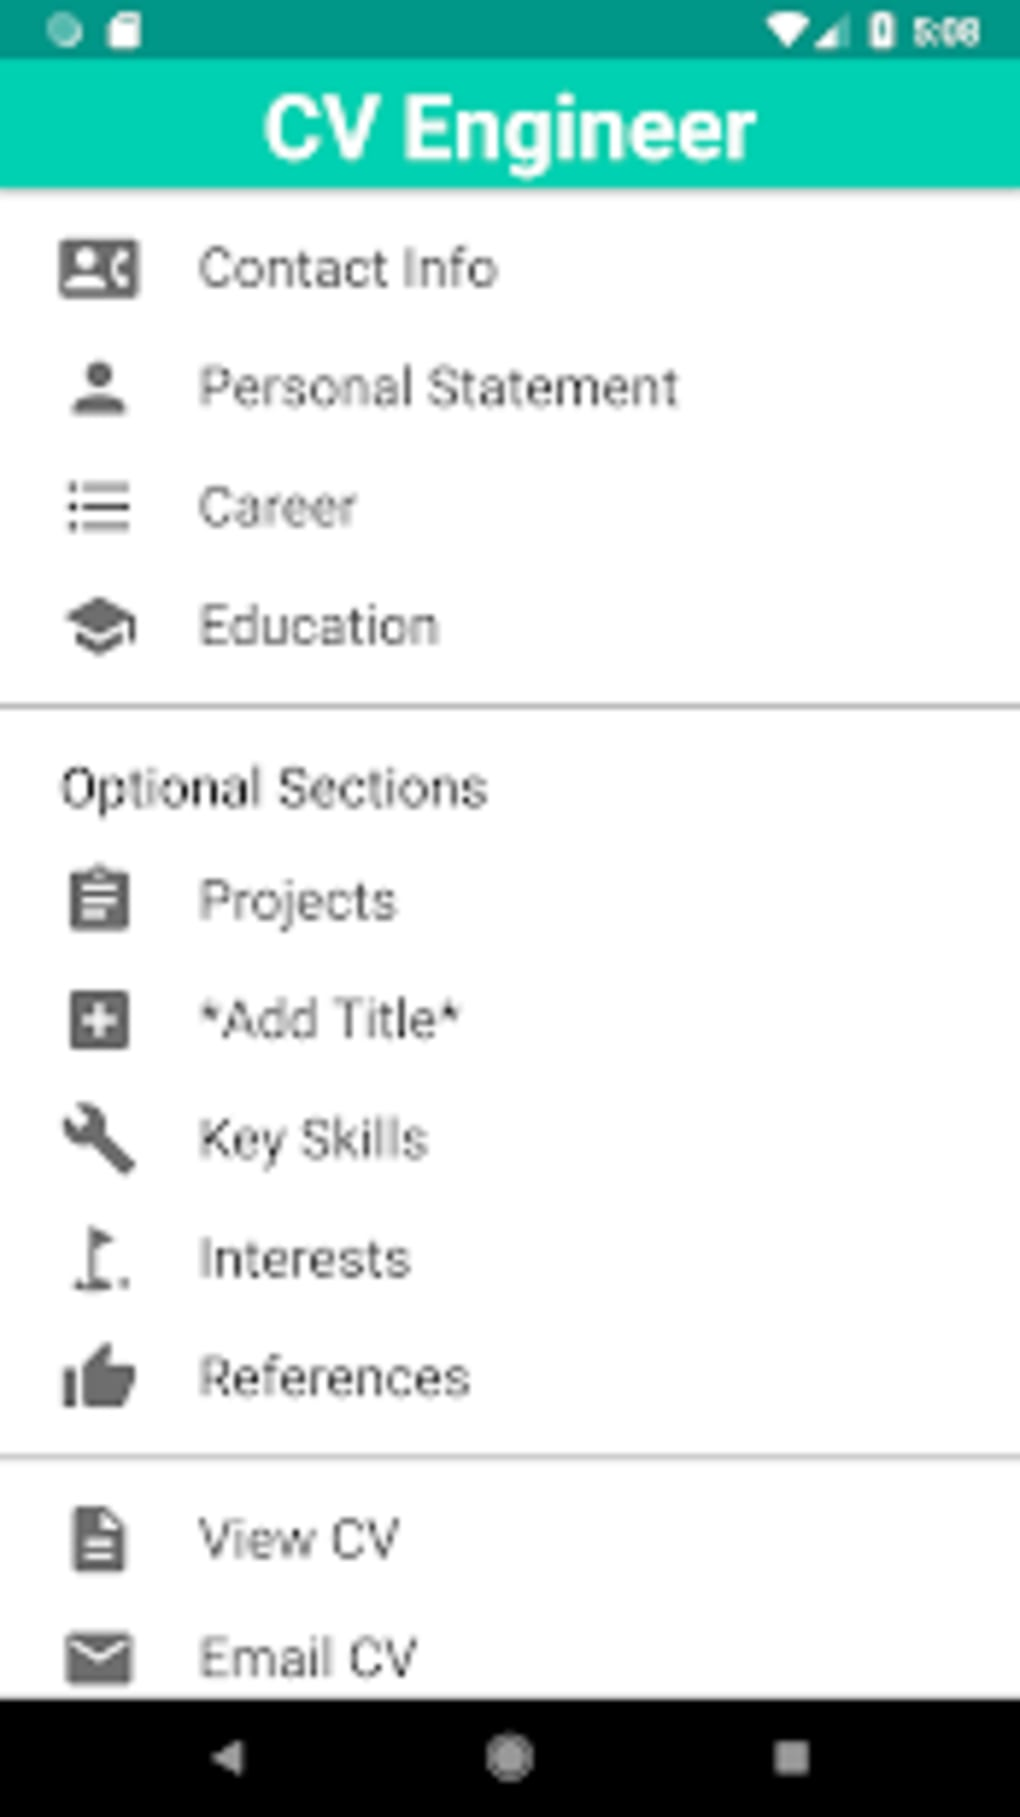 CV Engineer Free Resume Builder CV Template for Android ...